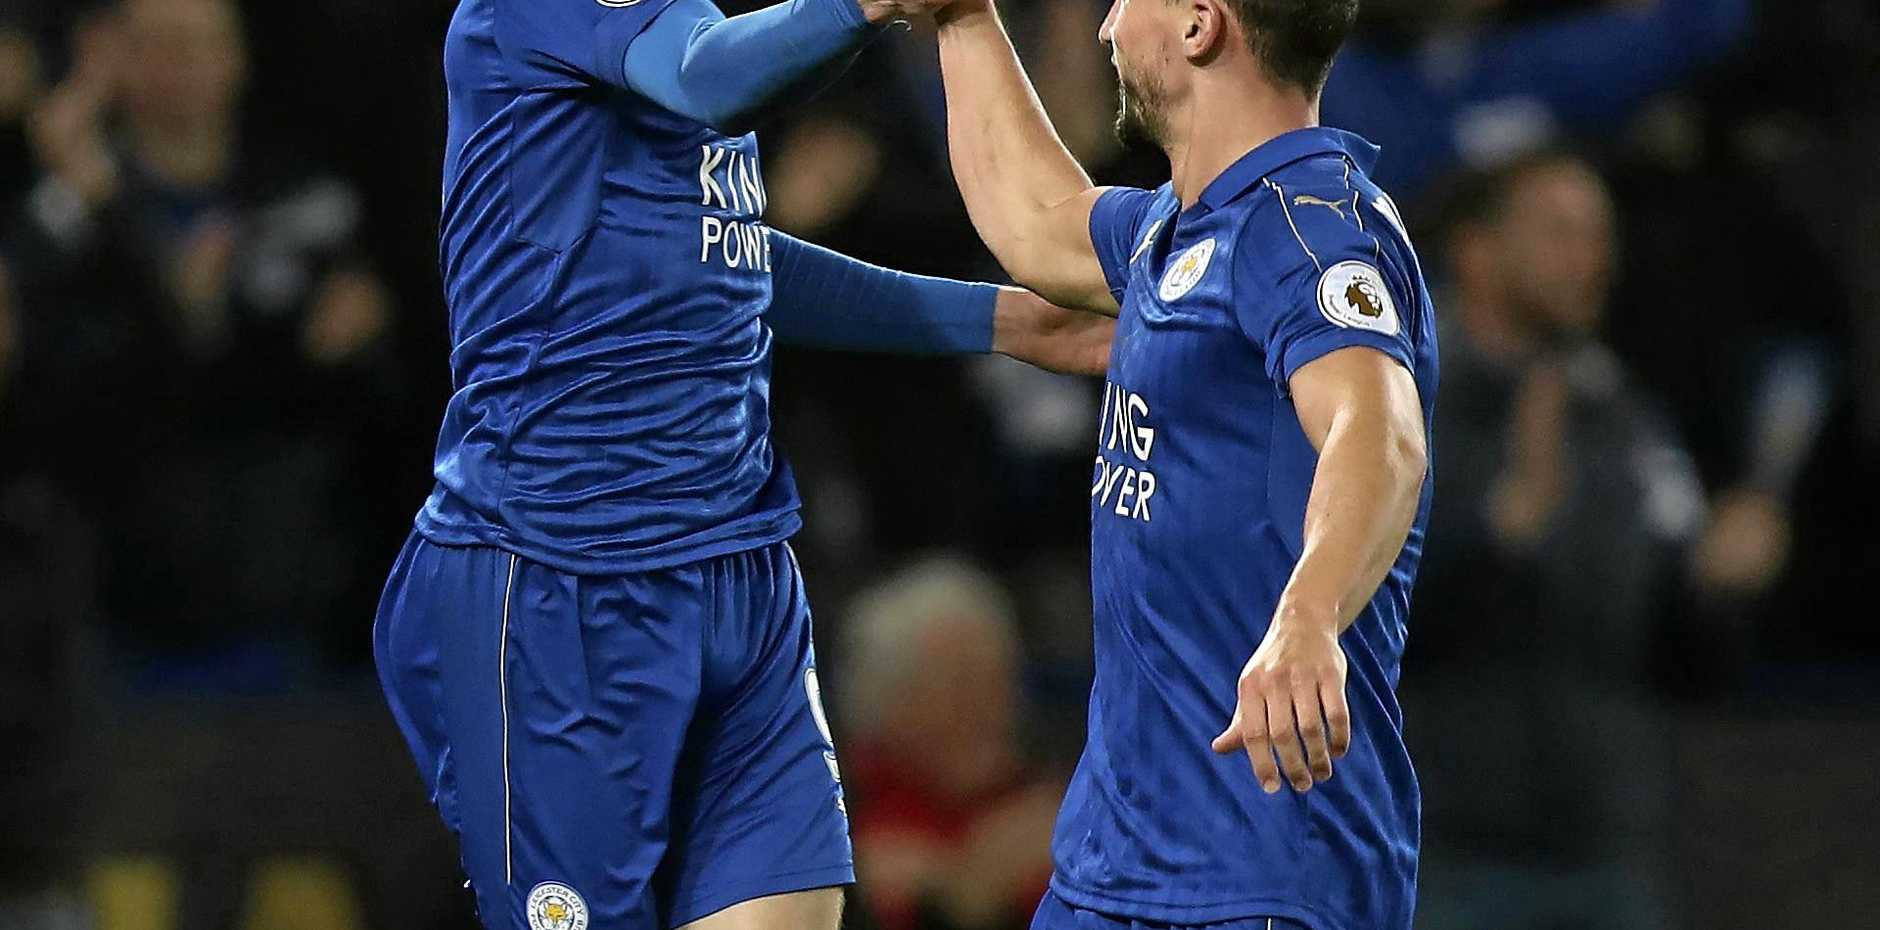 Leicester City's Jamie Vardy celebrates scoring his sides second goal with Daniel Drinkwater, right, during the English Premier League match, Leicester against Sunderland at the King Power Stadium, Leicester, England, Tuesday April 4, 2017. (Mike Egerton/PA via AP)